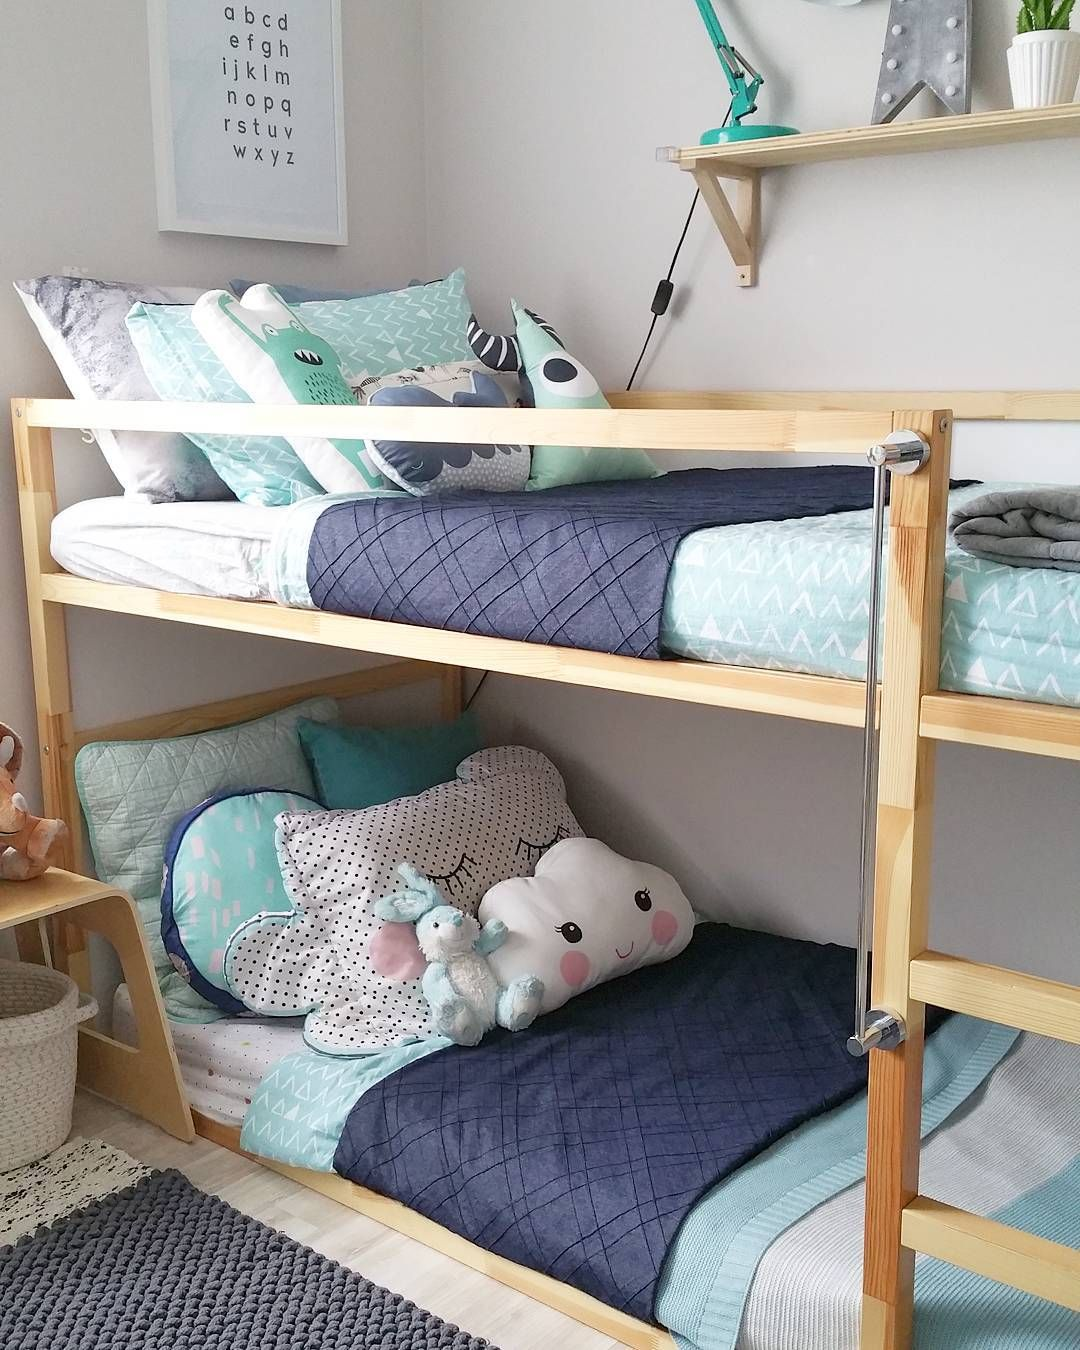 Ikea Bunk Bed Australia Pregancy 101 Tips To Help Make It Easier In 2019 Kiddies Kids